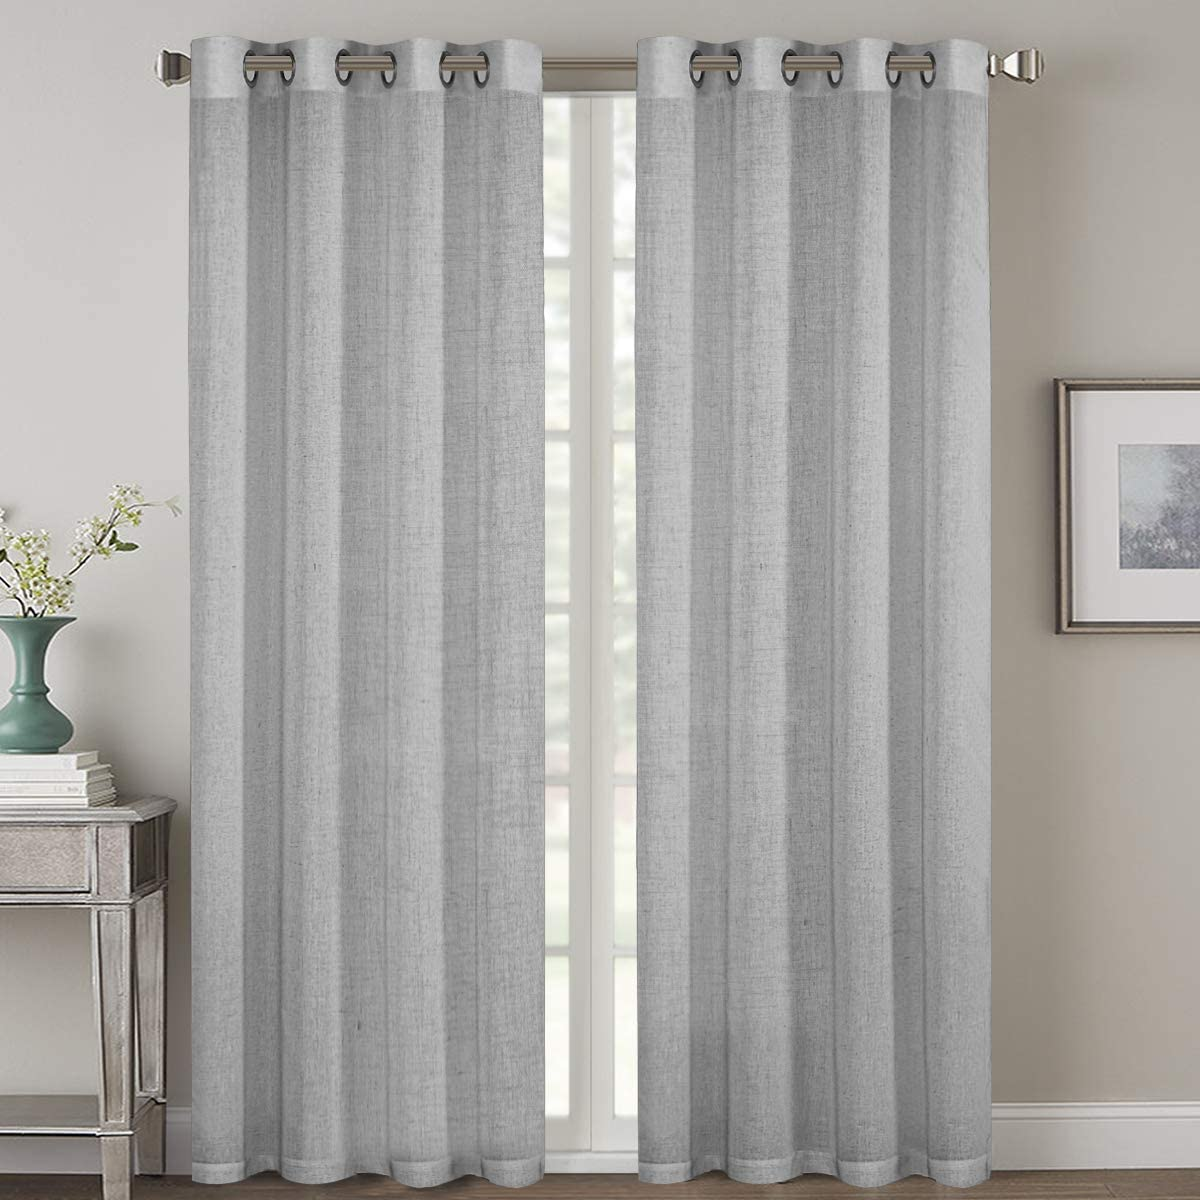 H.VERSAILTEX 2 Pack Ultra Luxurious High Woven Linen Elegant Curtain Panels Light Reducing Privacy Panels Drapes, Nickel Grommet Curtain Set, Extra Long 52x108-Inch, Dove